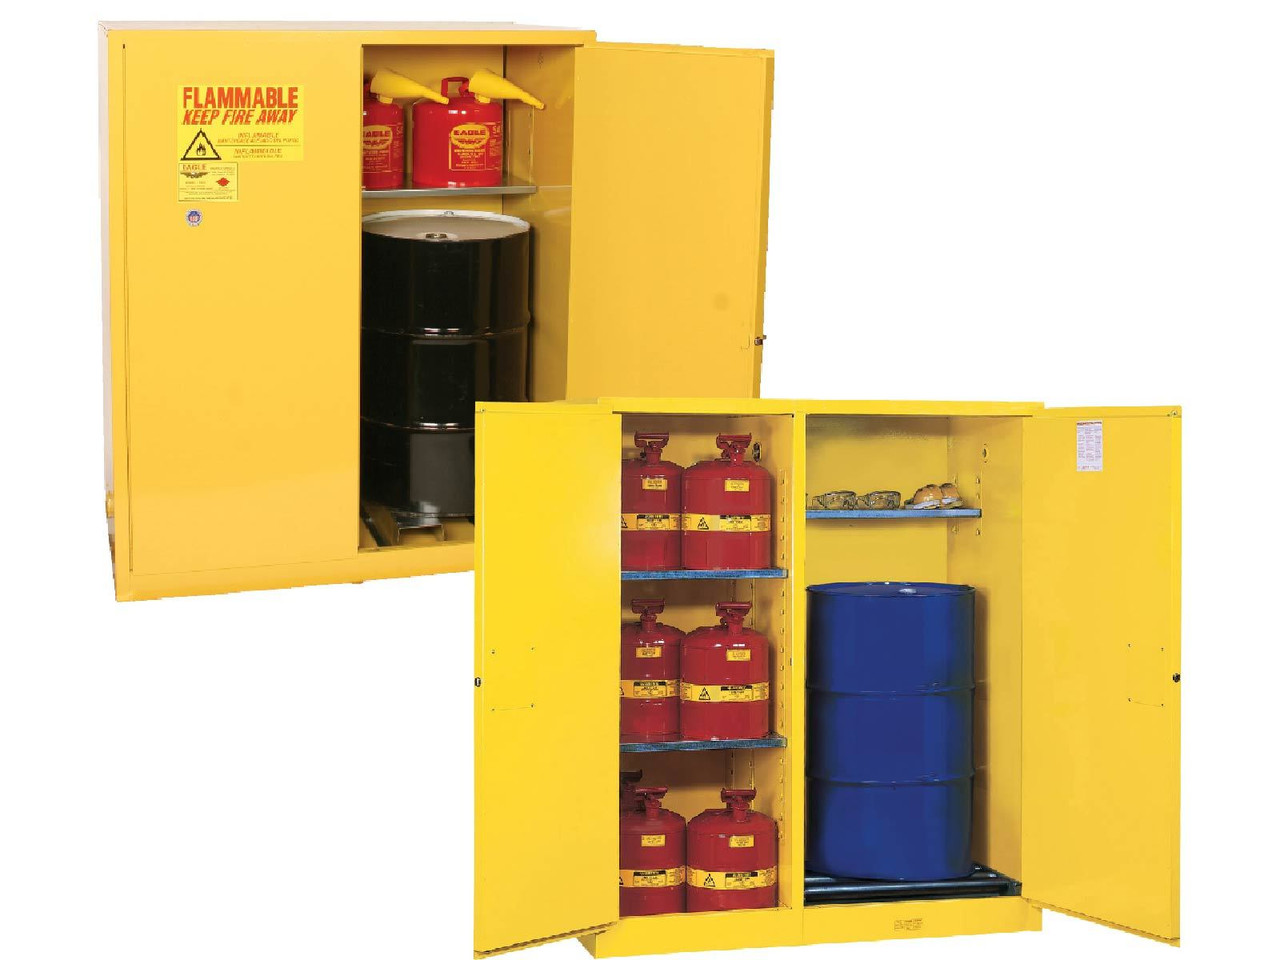 Awesome Flammable Drum Storage Cabinets Flammable Cabinets Download Free Architecture Designs Intelgarnamadebymaigaardcom